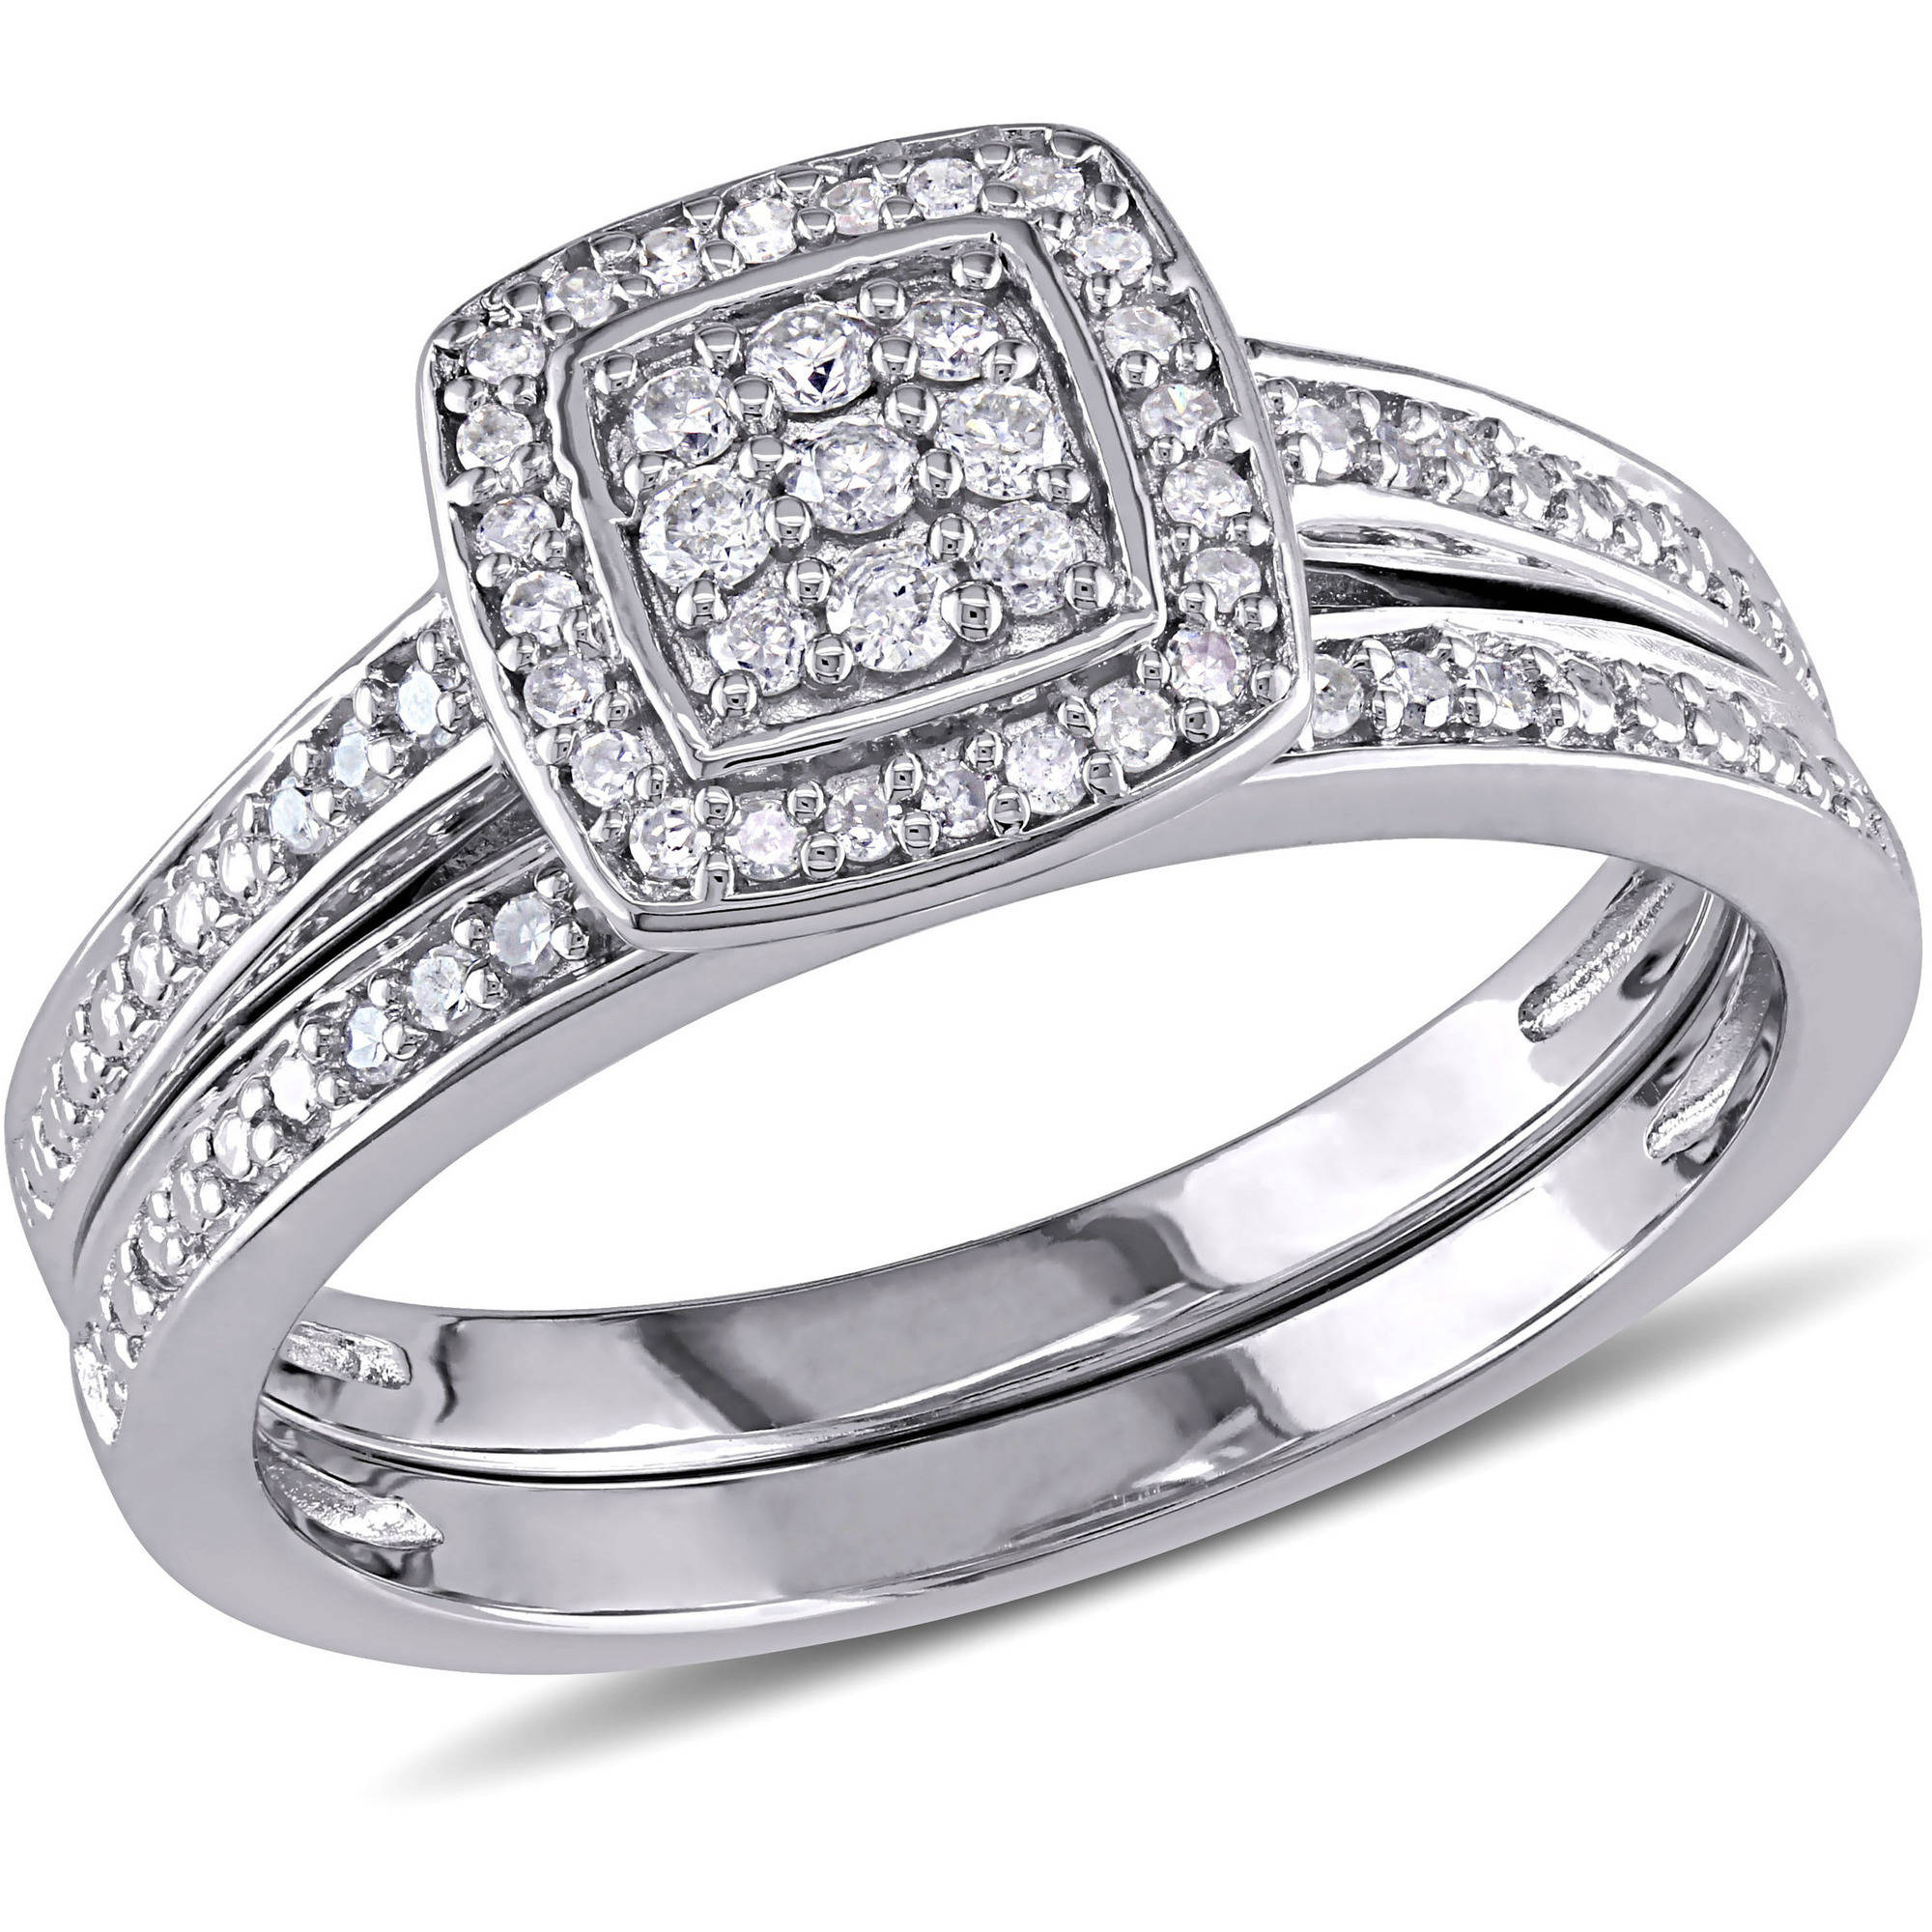 Miabella 1/4 Carat T.W. Diamond Sterling Silver Halo Bridal Set